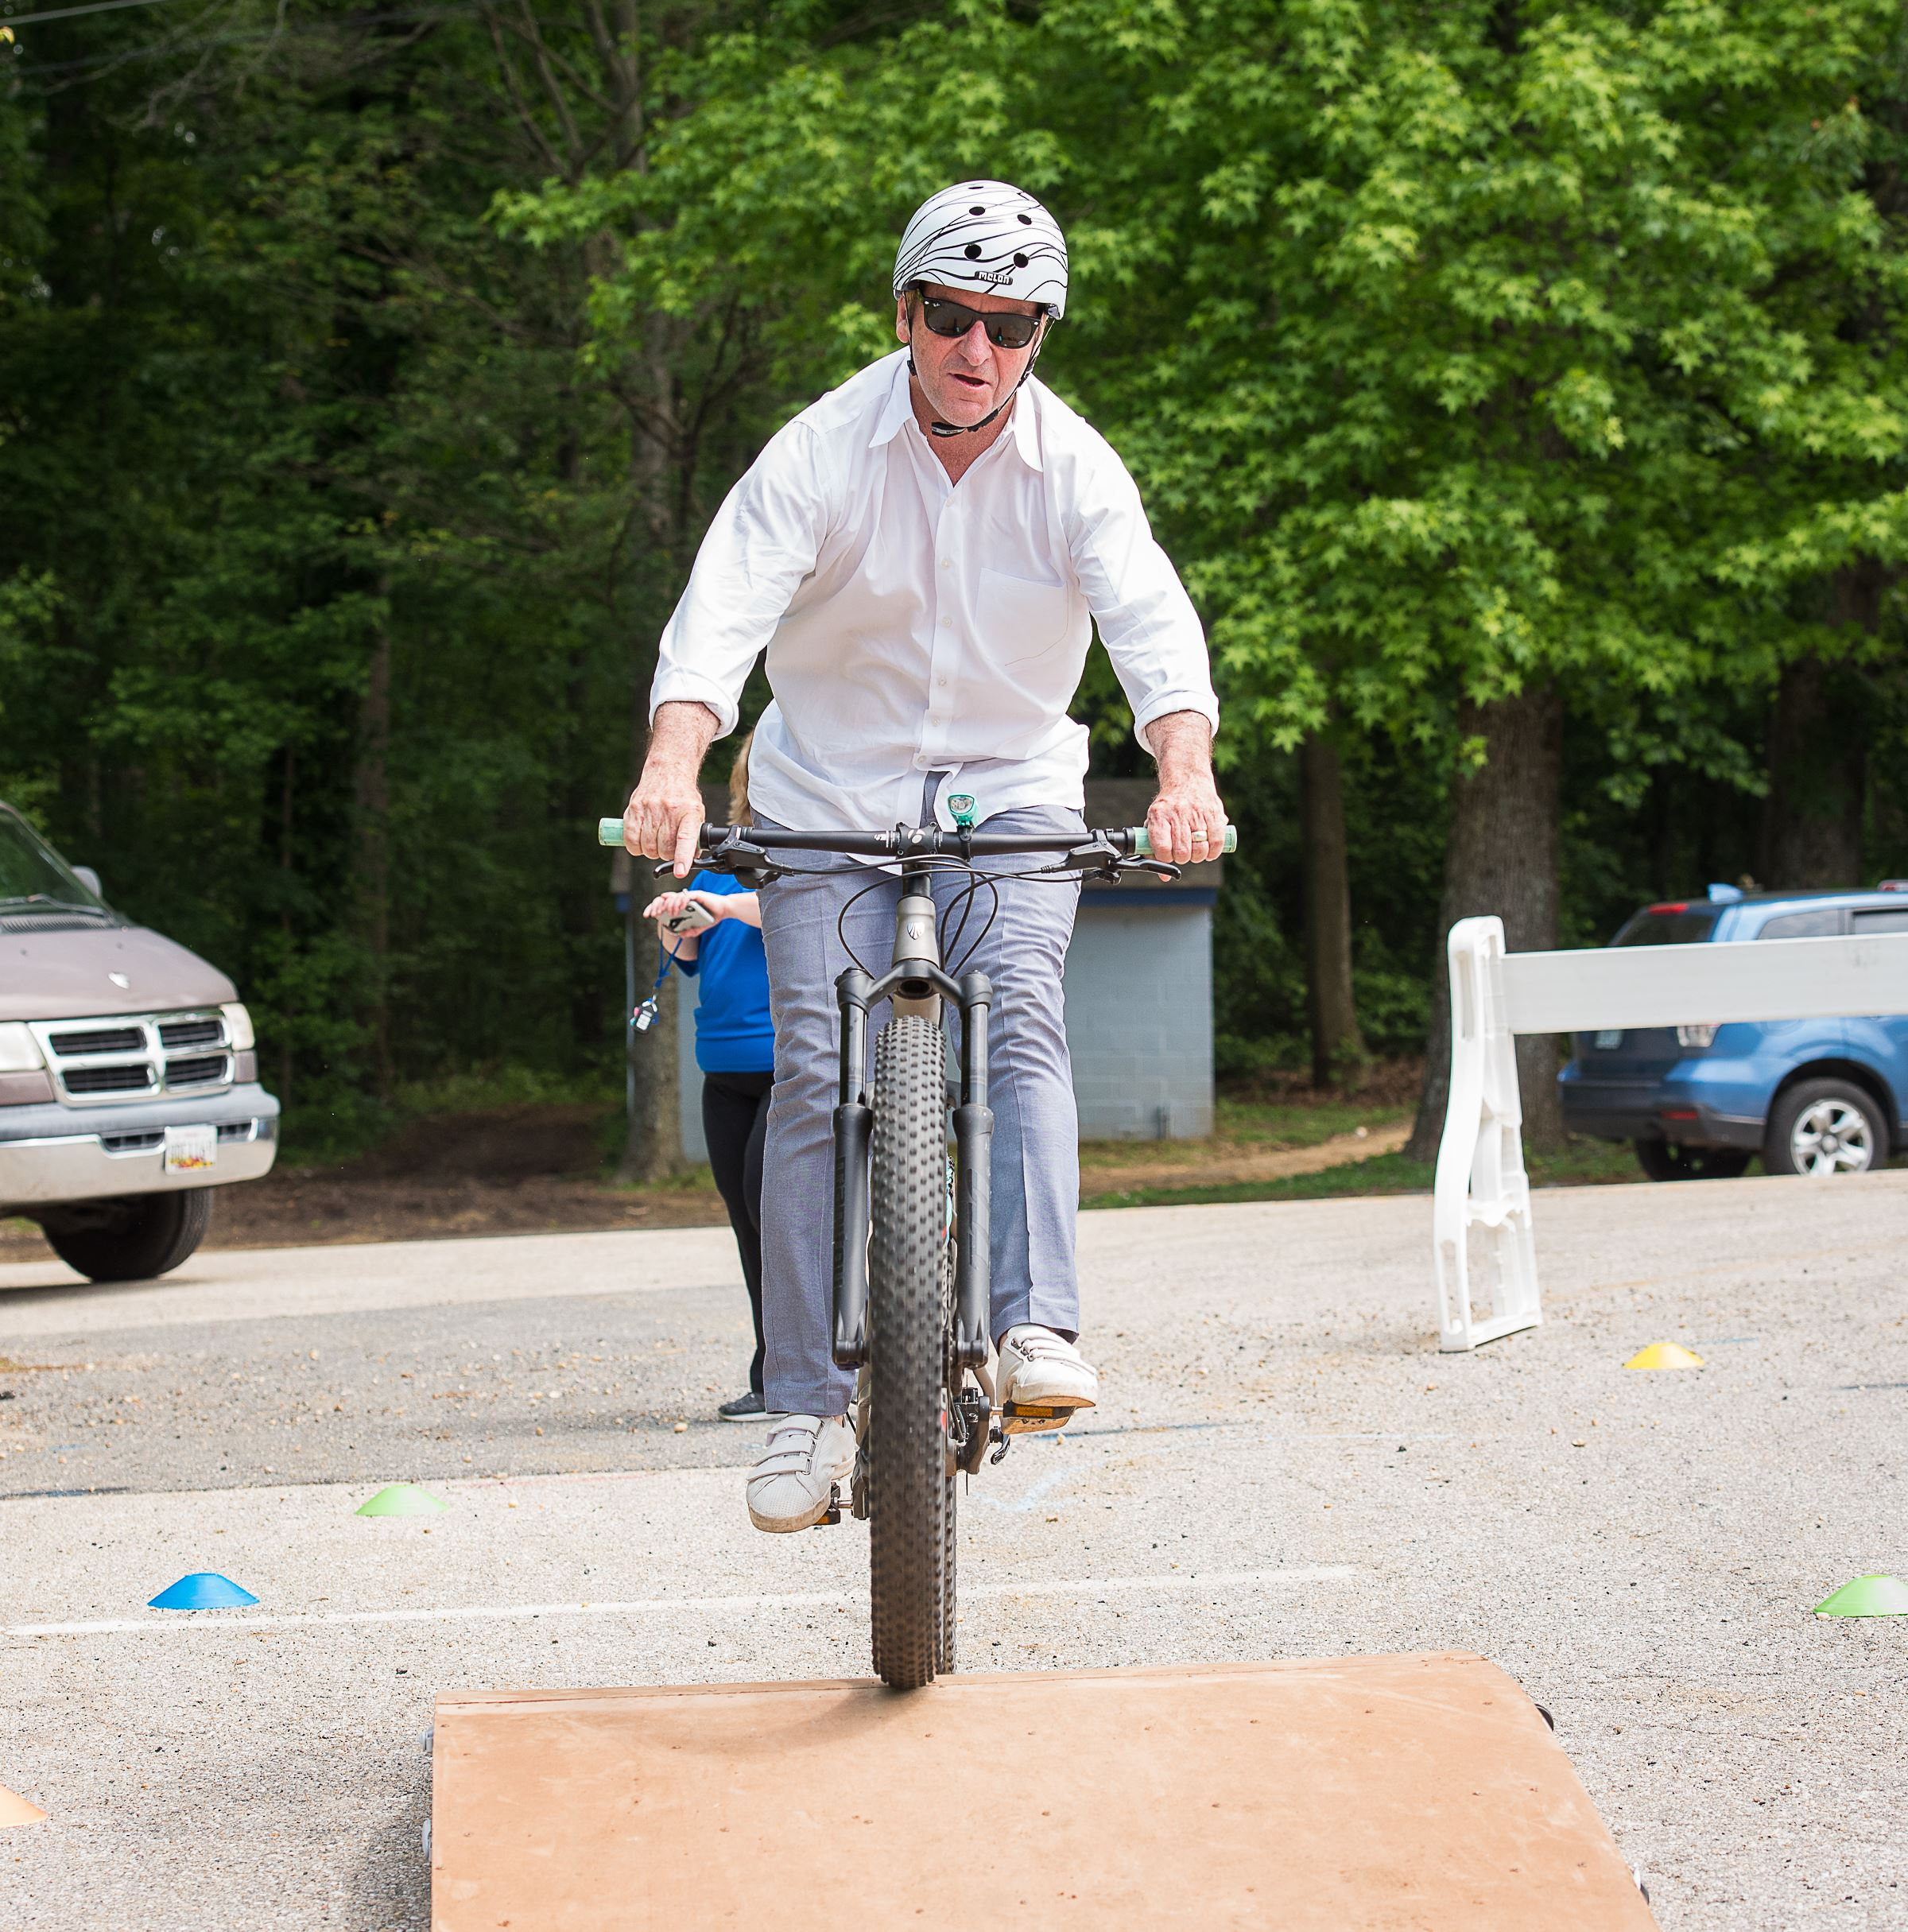 Mayor Gavin Buckley on PedalPower Kids bike course